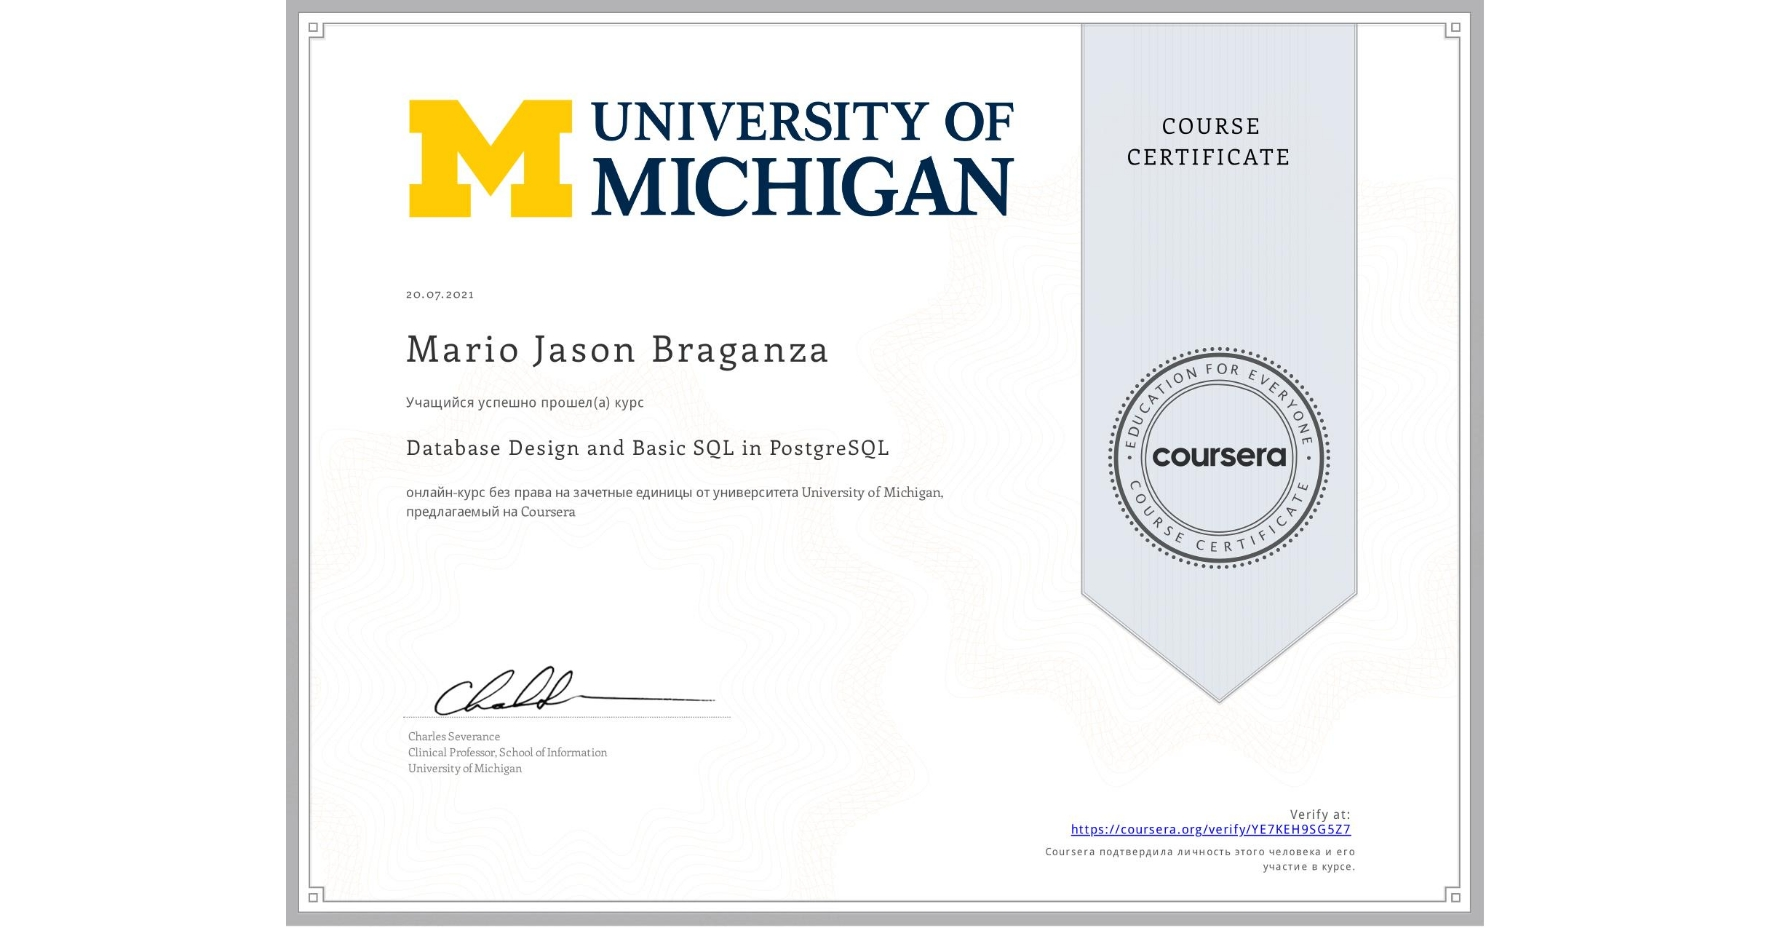 View certificate for Mario Jason Braganza, Database Design and Basic SQL in PostgreSQL, an online non-credit course authorized by University of Michigan and offered through Coursera